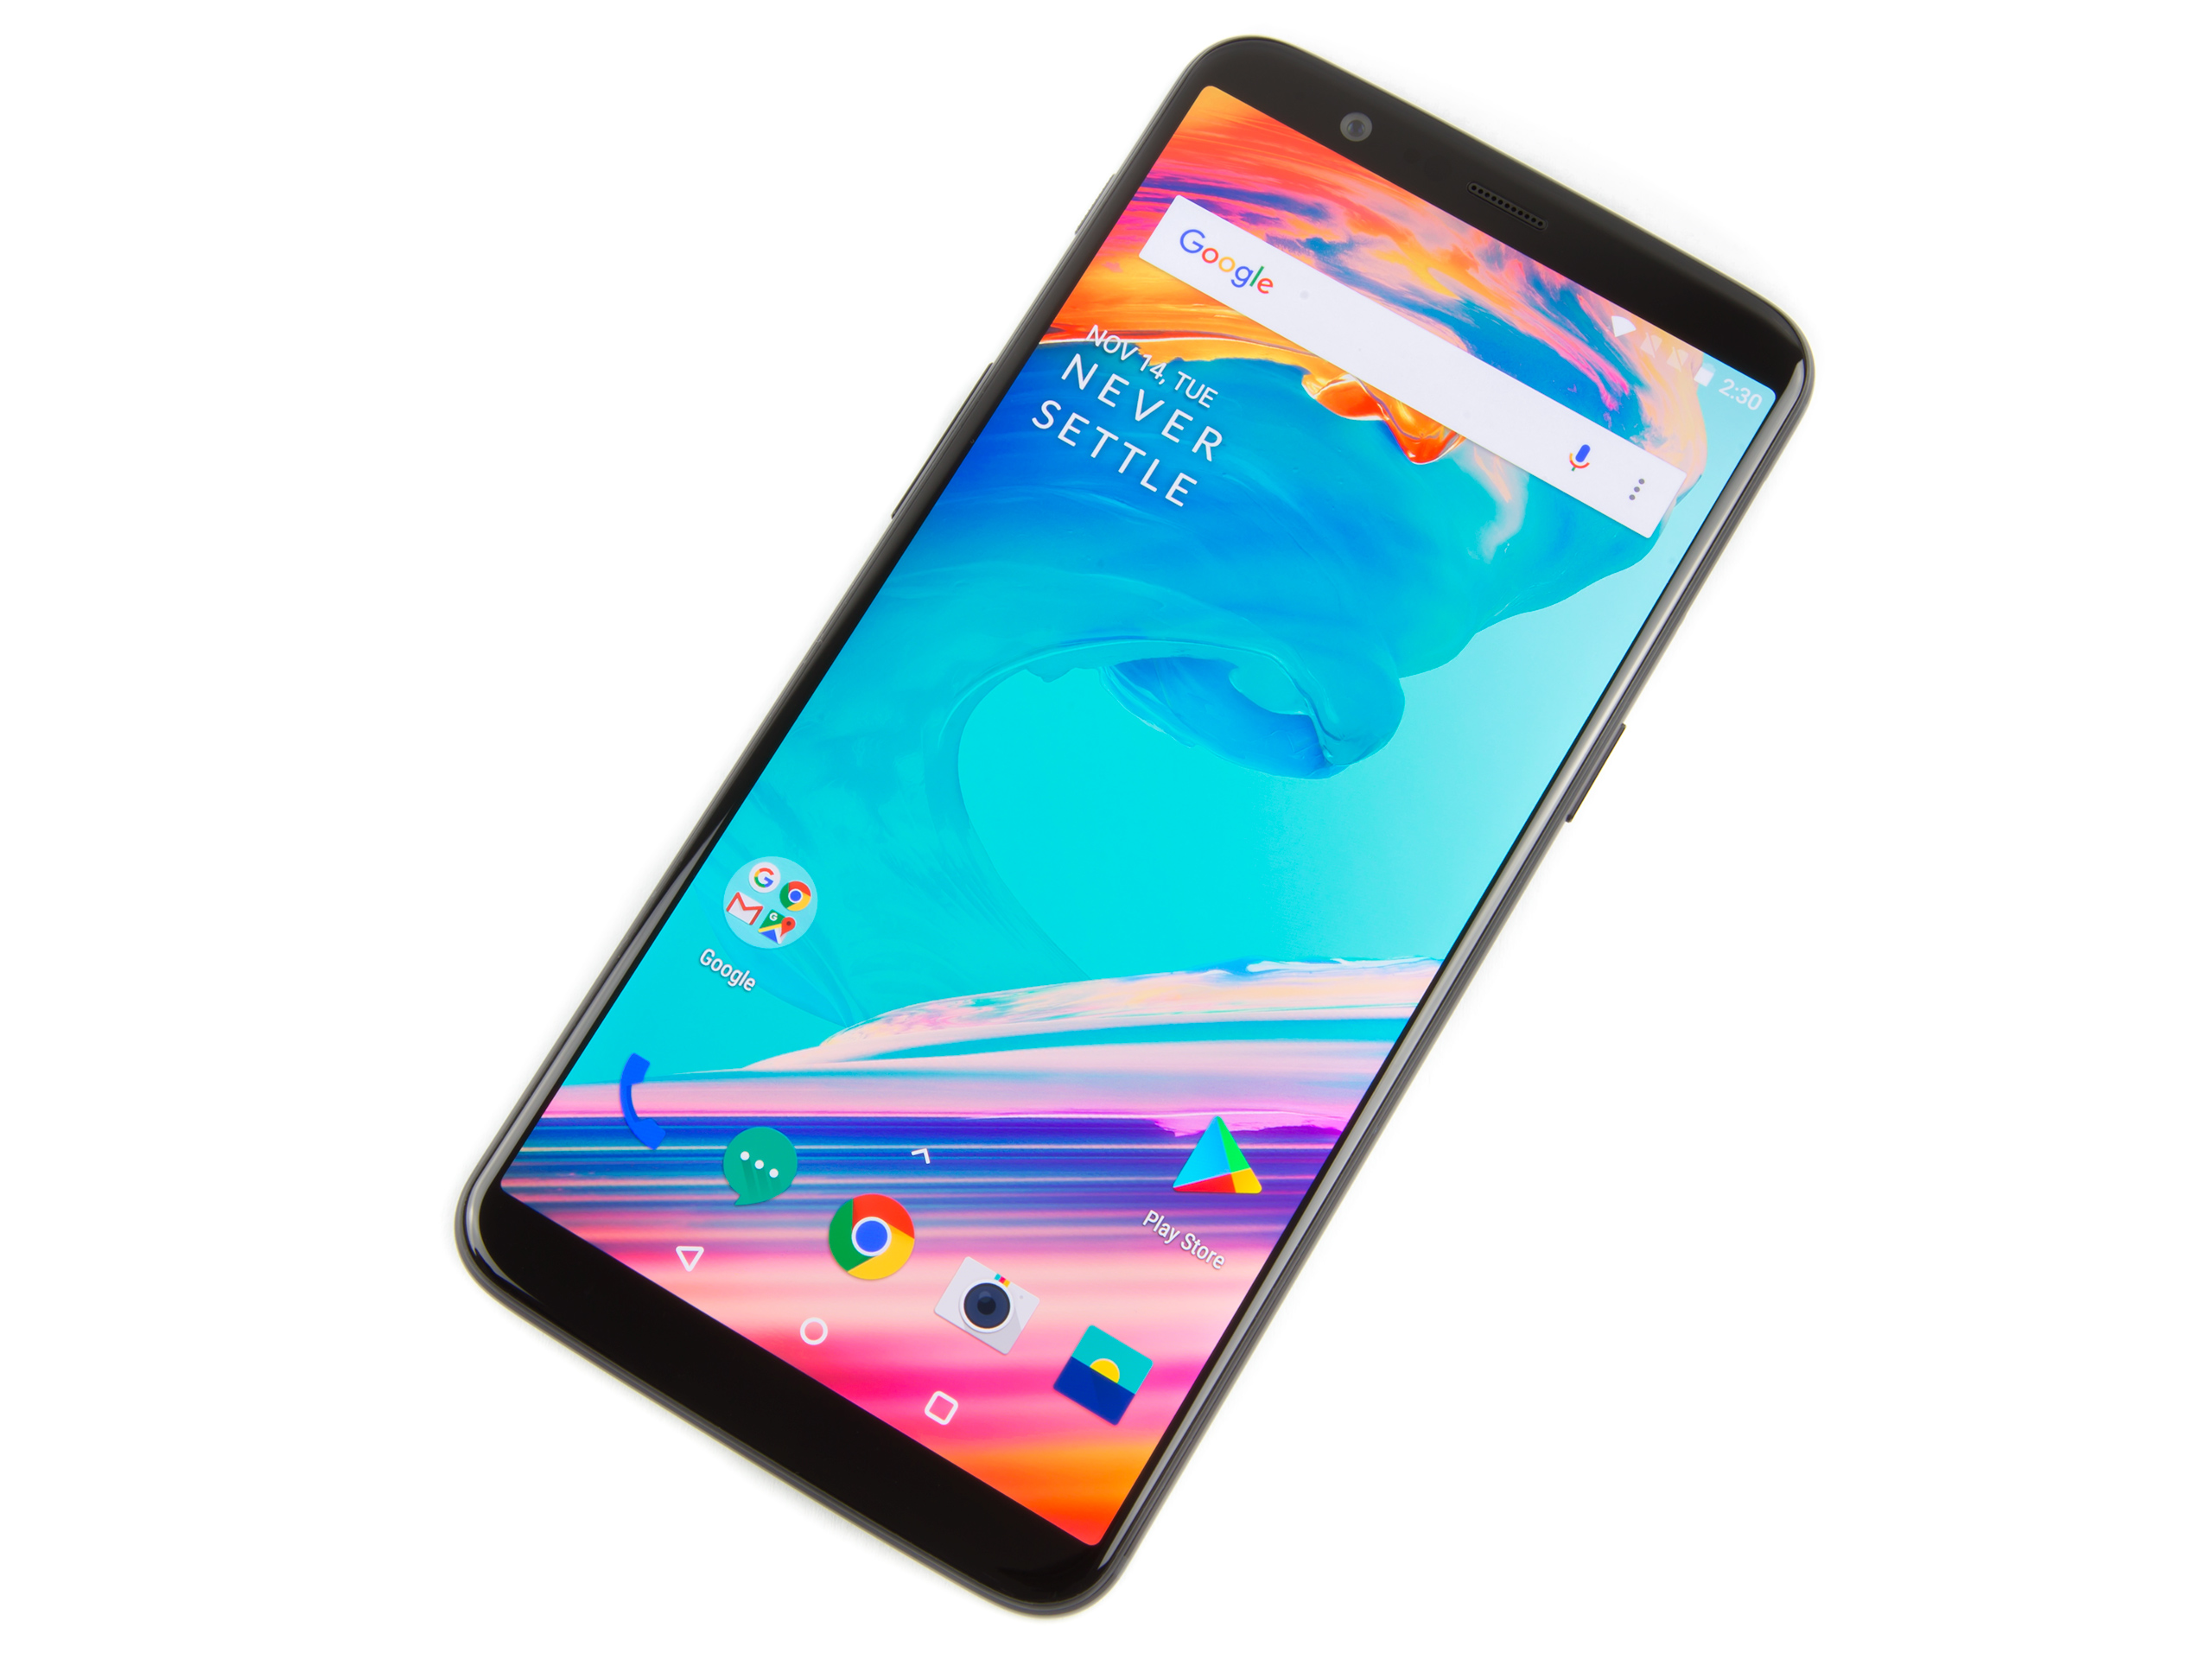 The OnePlus 5T. Check out those slim bezels.